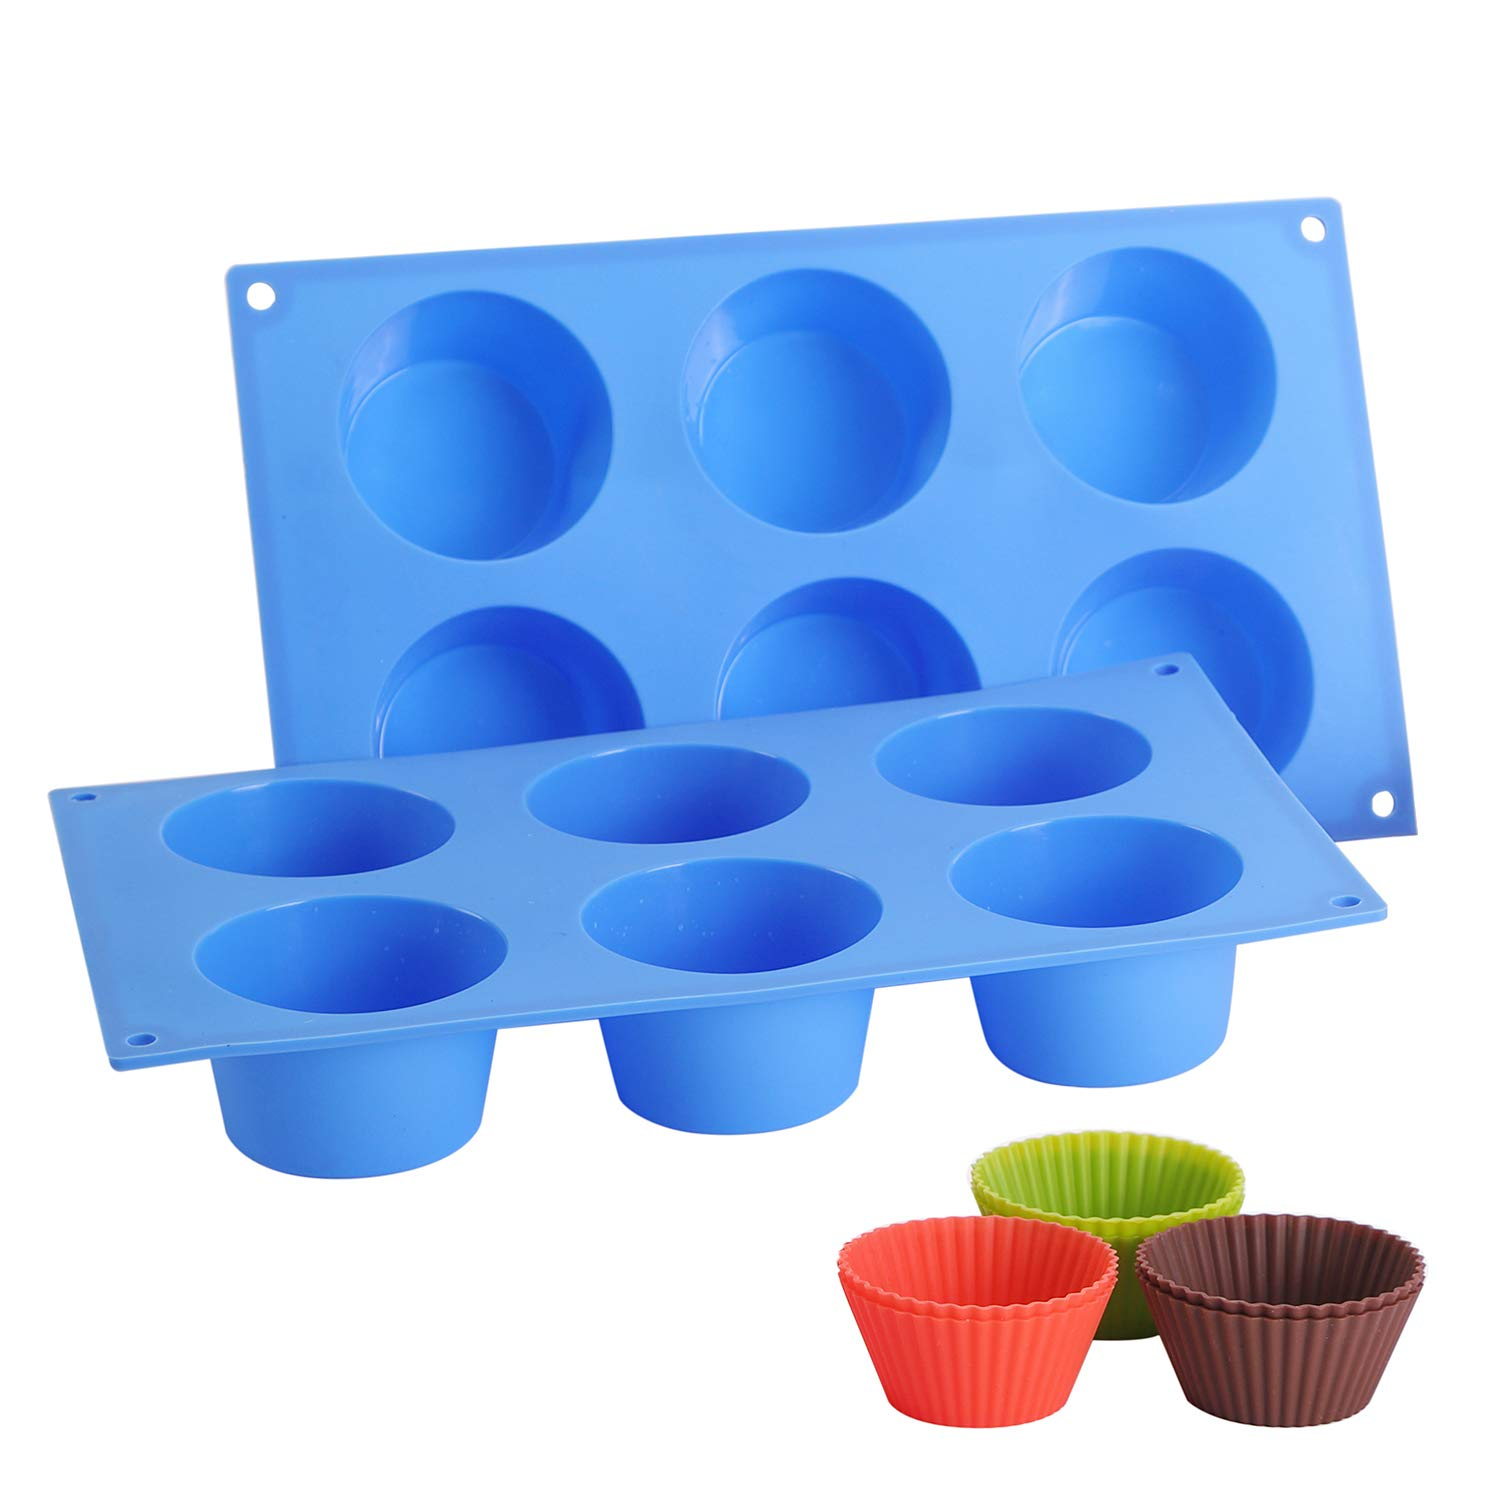 DONIBUDO BPA Free Silicone Jumbo Muffin Cupcake Pans,Non-Stick 6 Large/Big Baking cups, Food Grade Molds, Dishwasher & Microwave Safe - Pop Out Easily, Come with 6 Silicone Baking Cups, Blue, 2 Packs…